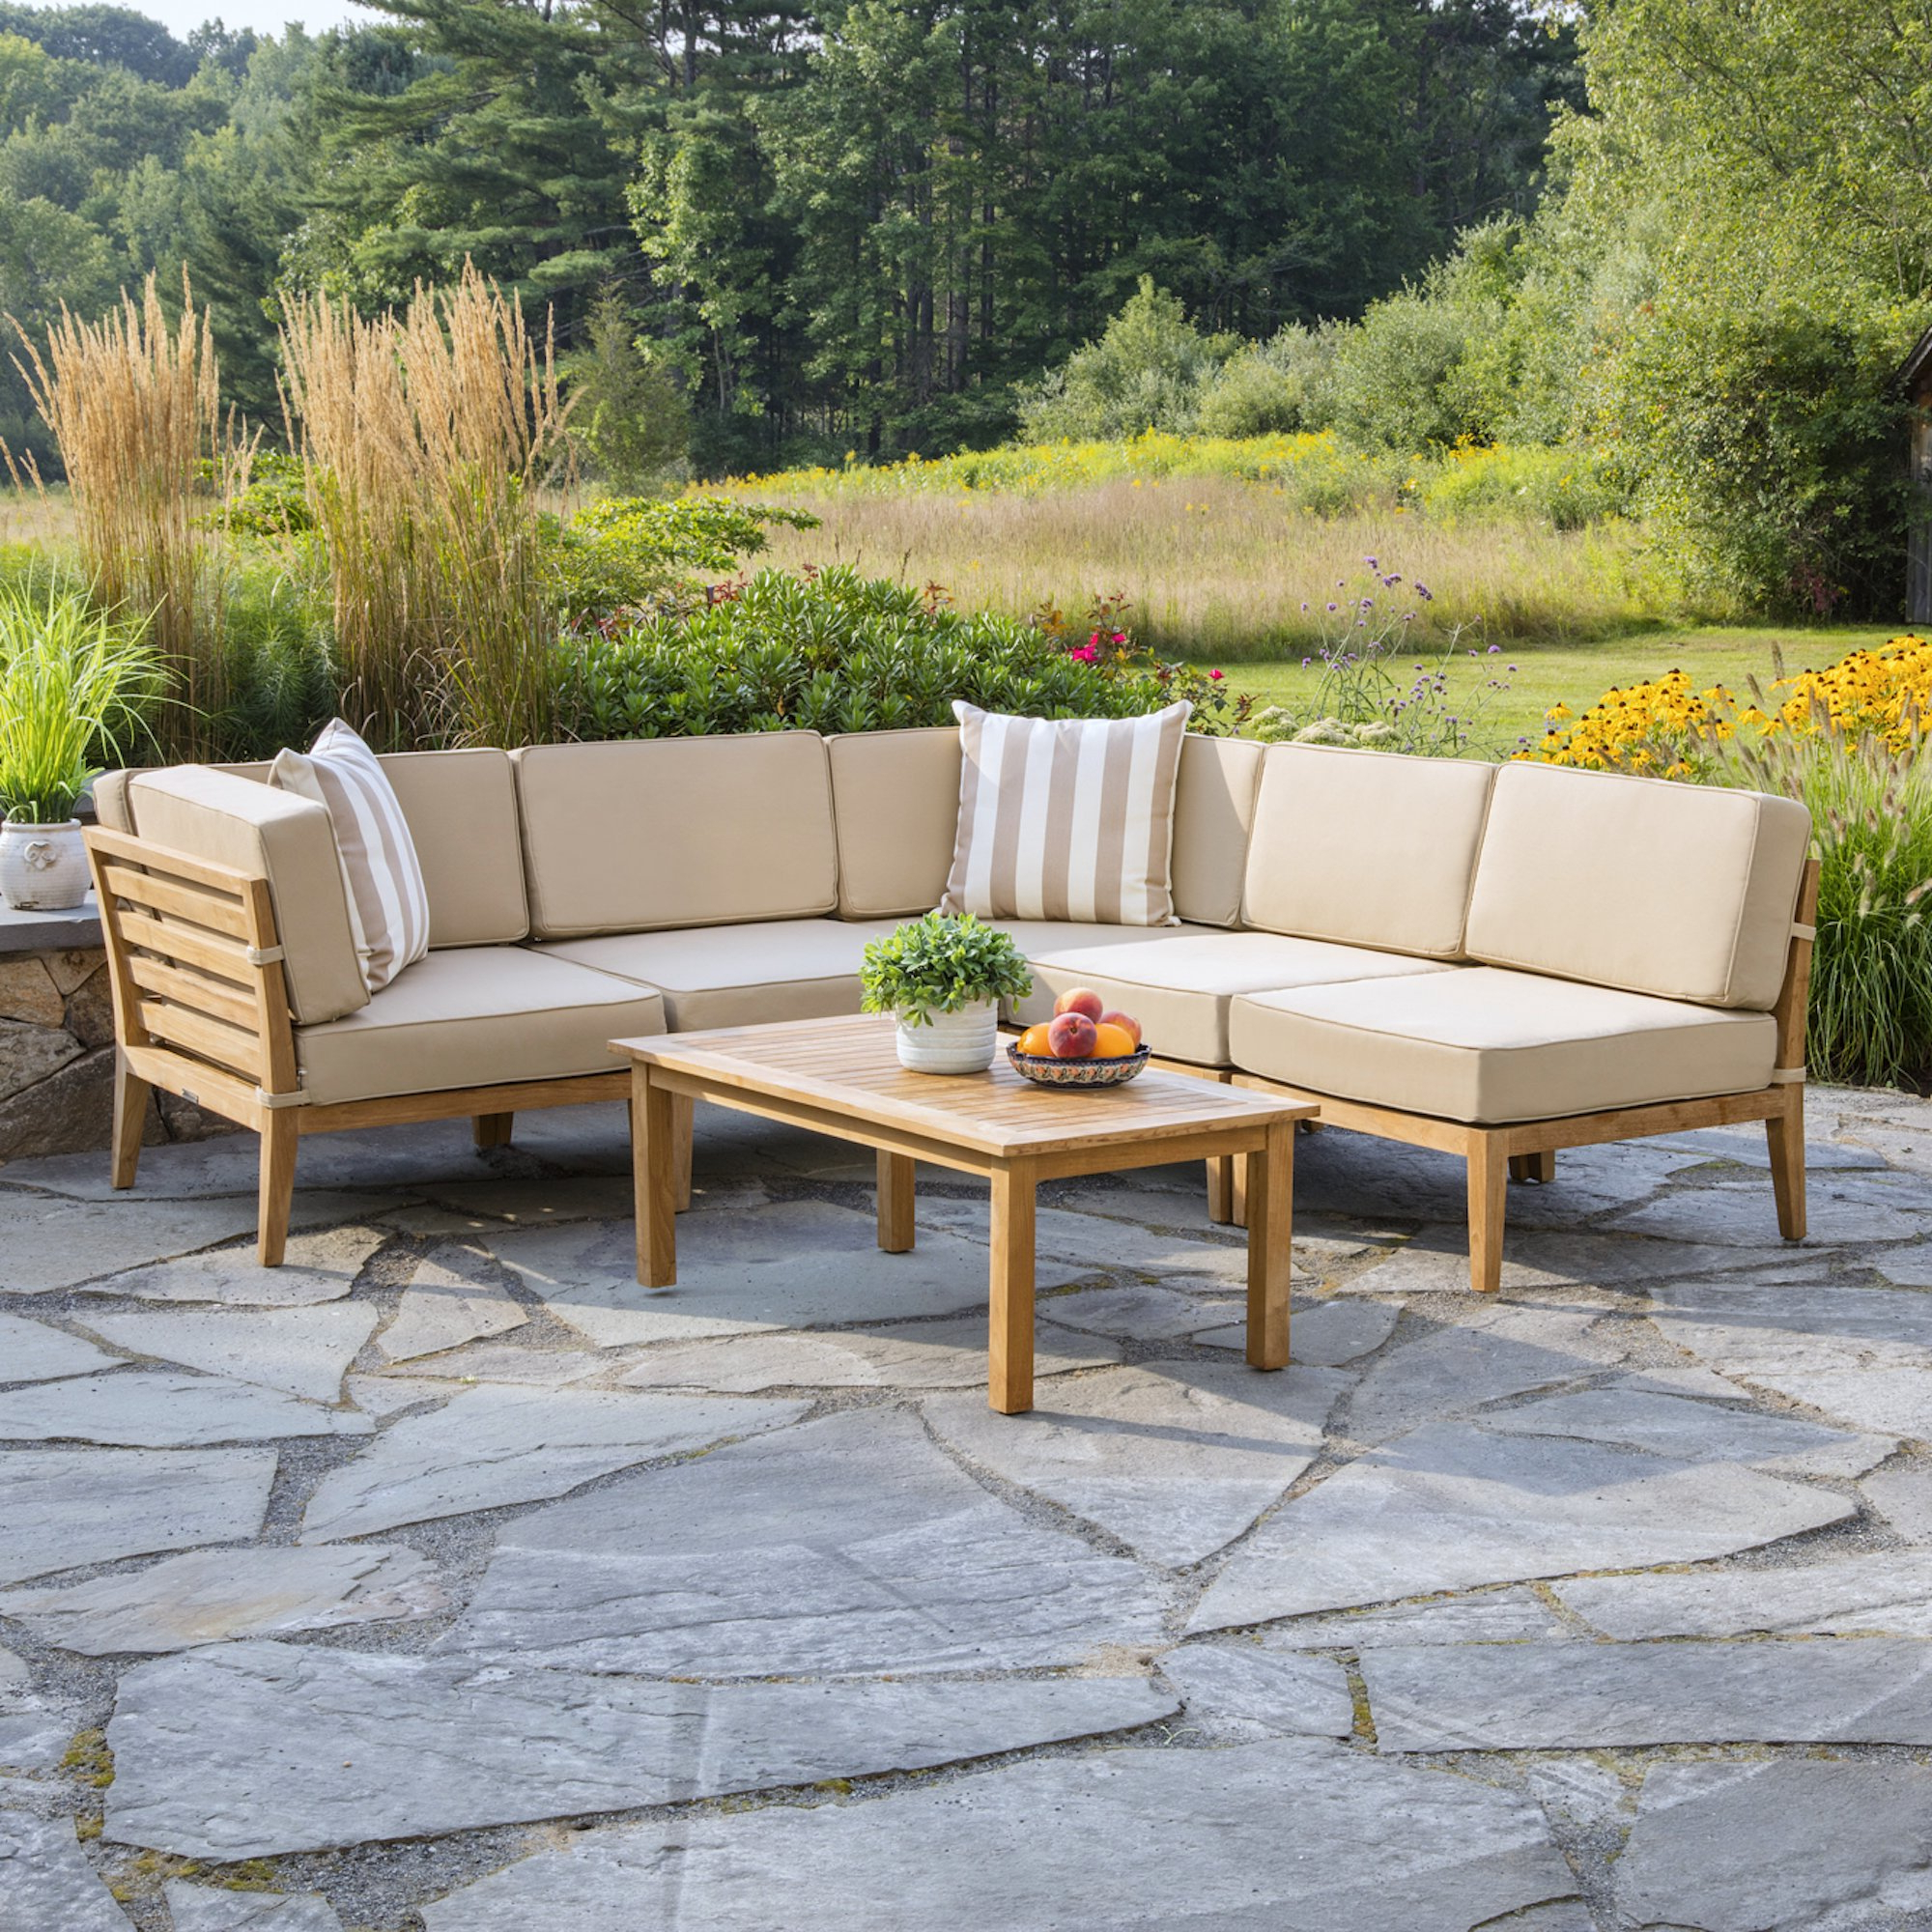 Trendy Bali 6 Piece Teak Sectional Set With Cushions With Regard To Antonia Teak Patio Sectionals With Cushions (View 23 of 25)